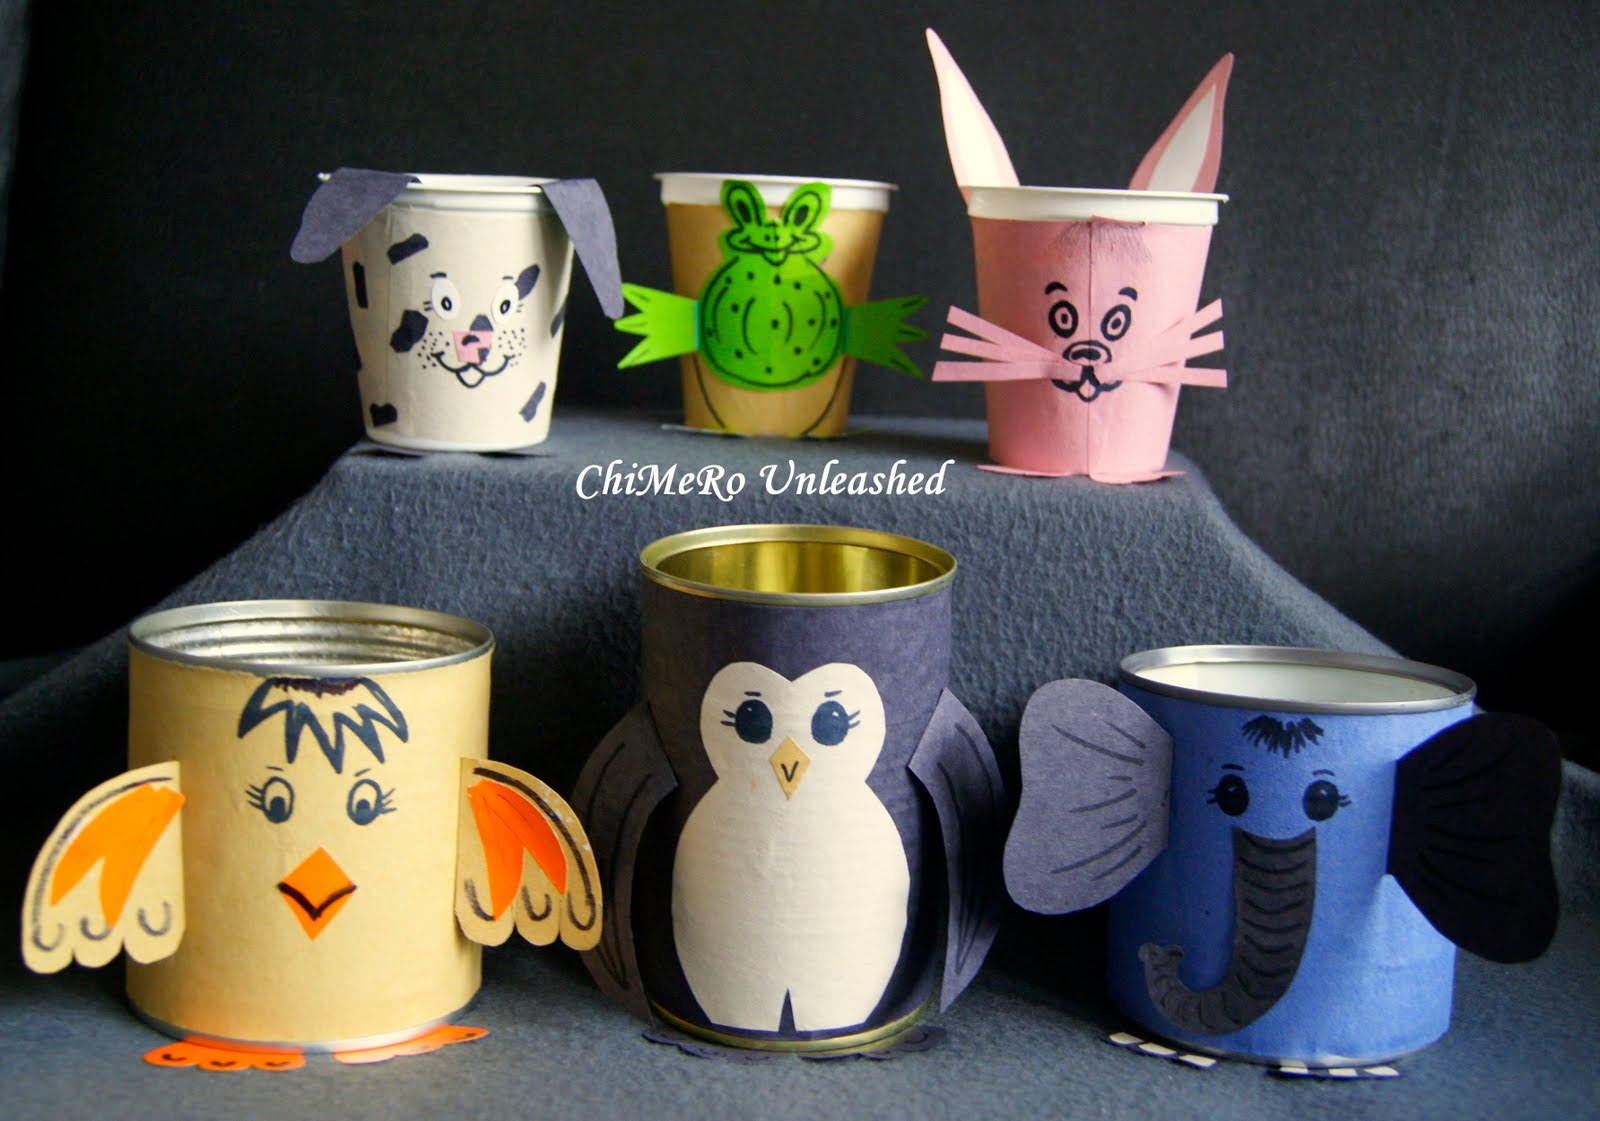 53 tin can crafts do small things with great love for Usable things made from recycled materials